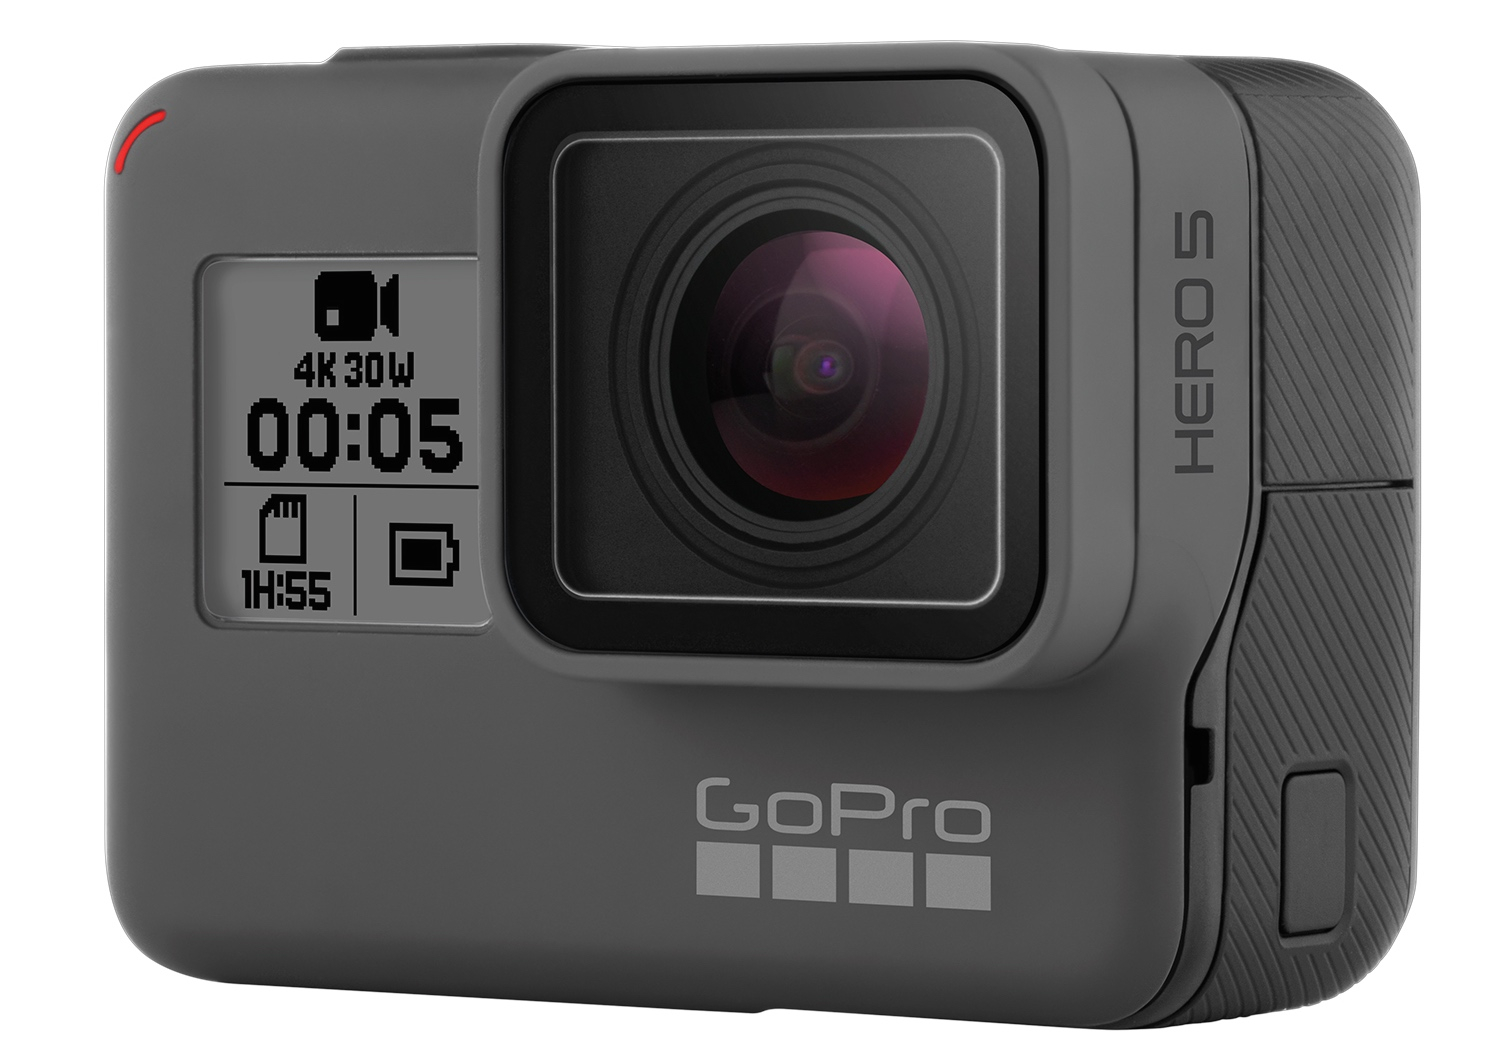 ... new GoPro Hero 5 Black is waterproof to 10 metres without a case GoPro